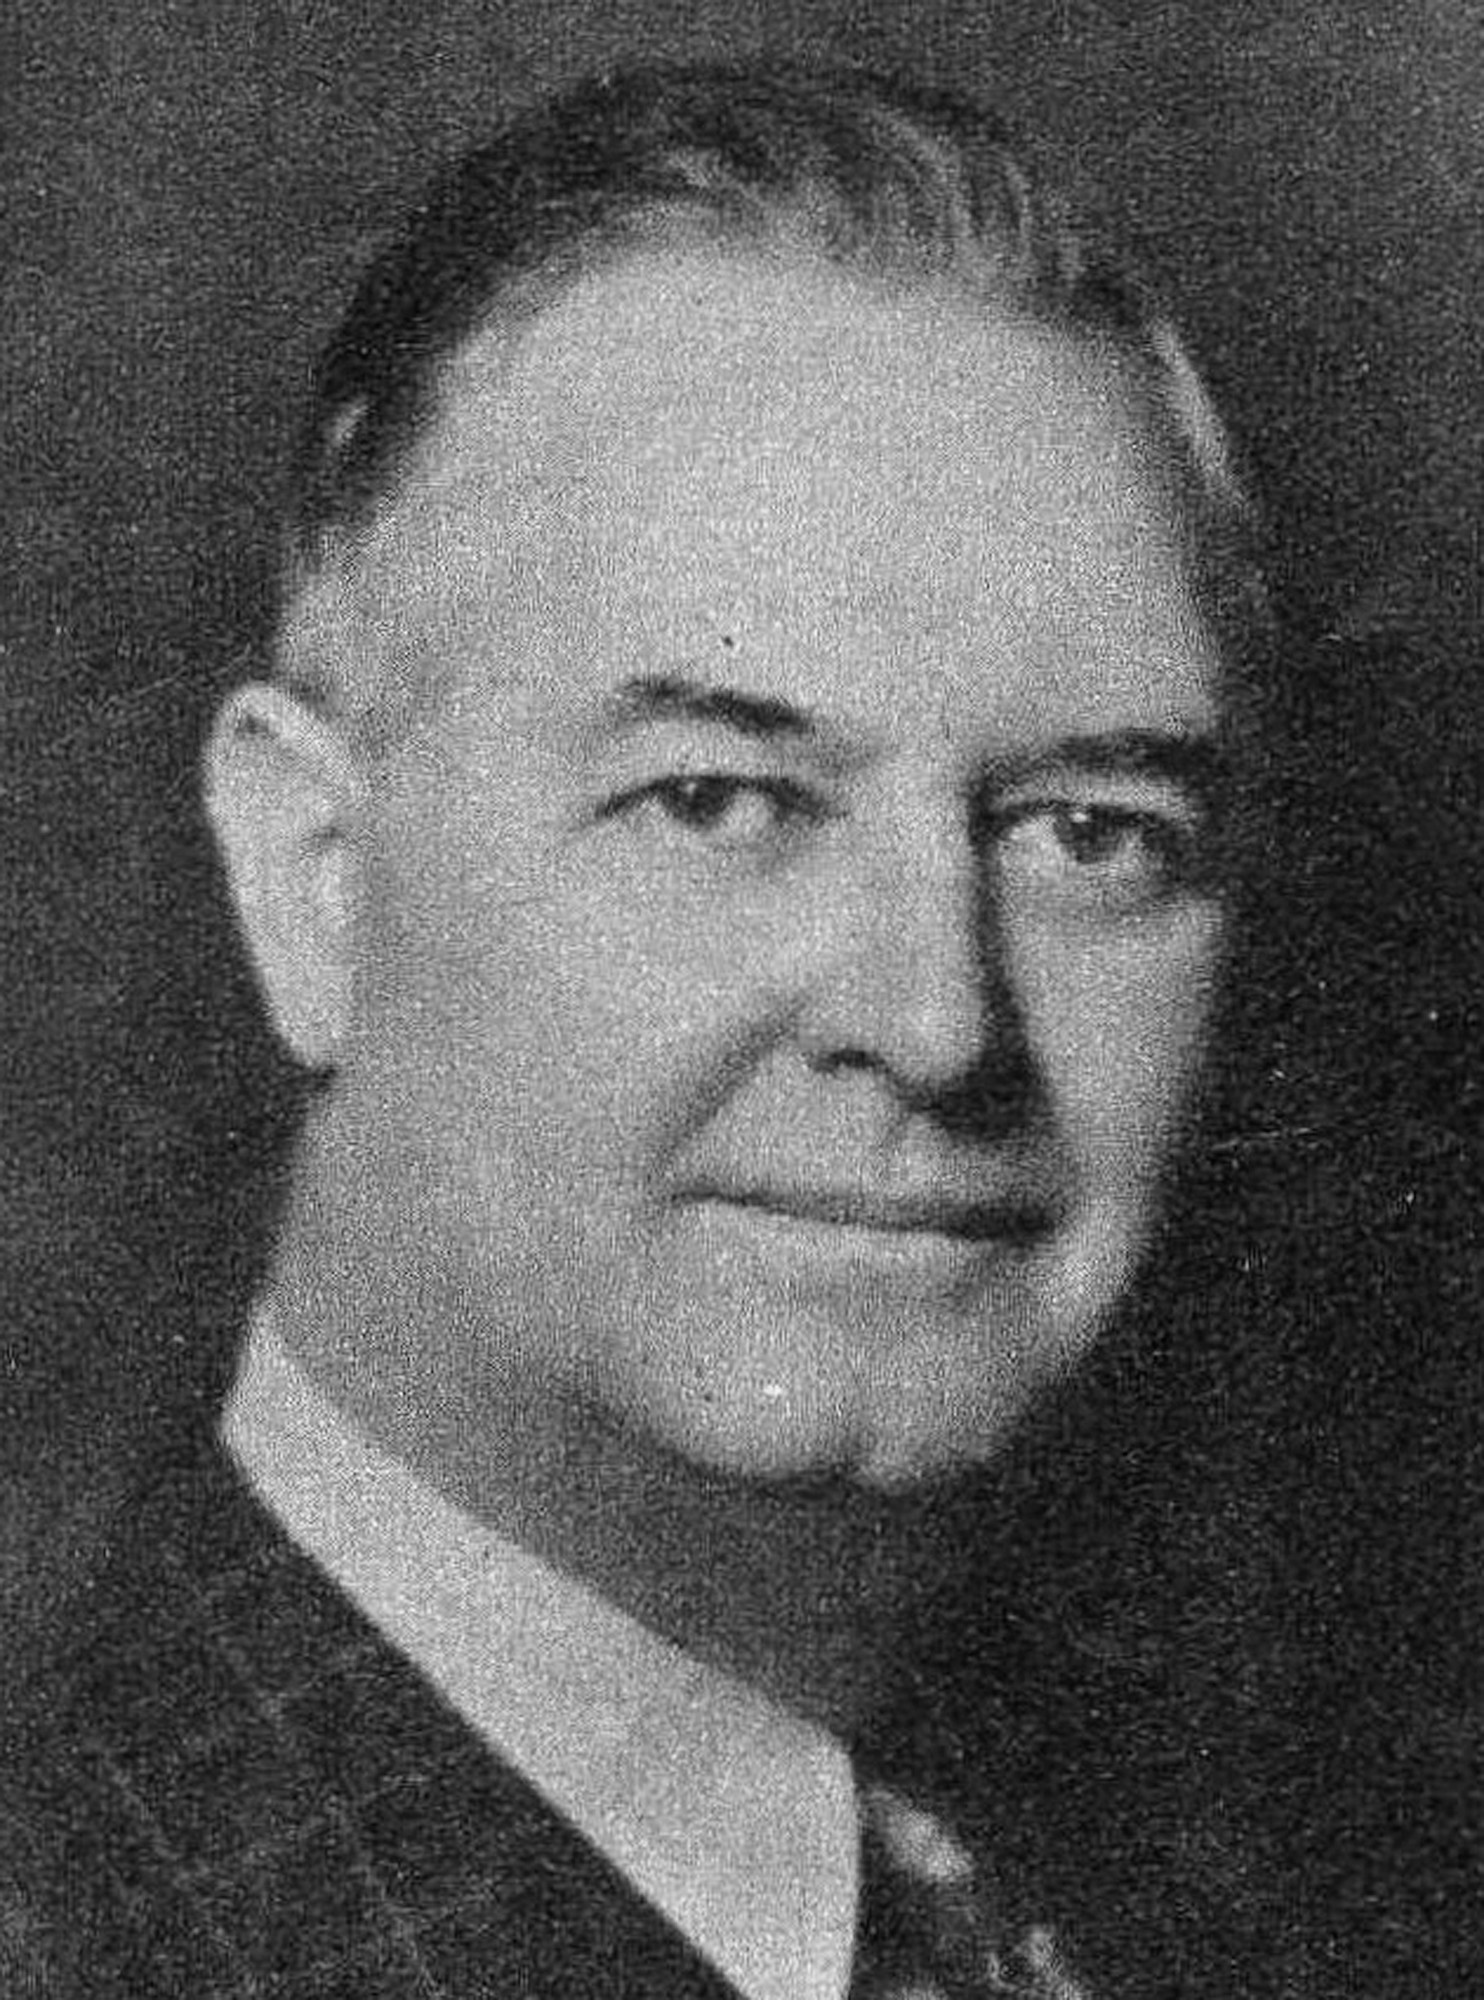 Edwin B. Boyle, president of Boyle Construction Co., mayor of Sumter